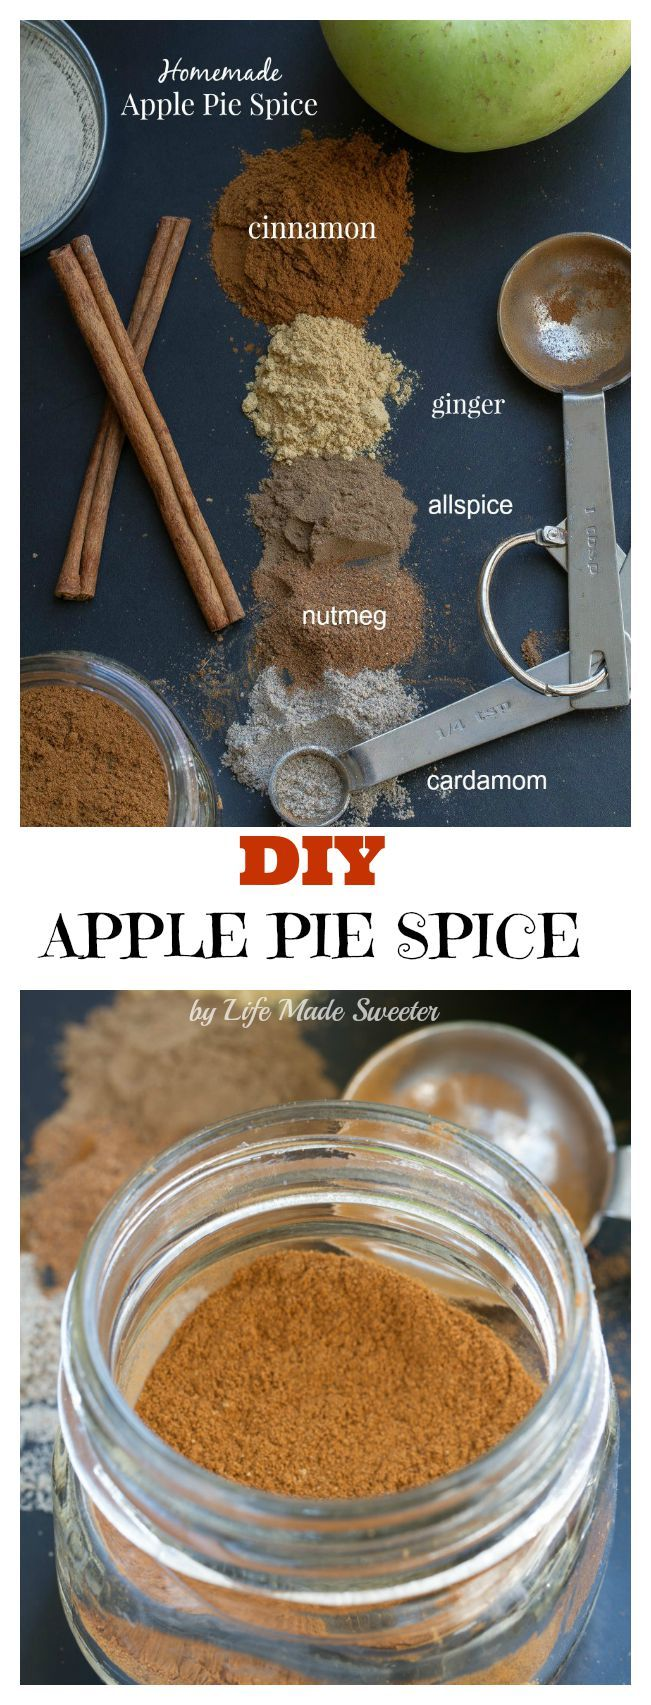 Homemade Apple Pie Spice - make your ave own DIY custom blend & you can save money and a trip to the store for make plenty of pies all season long!